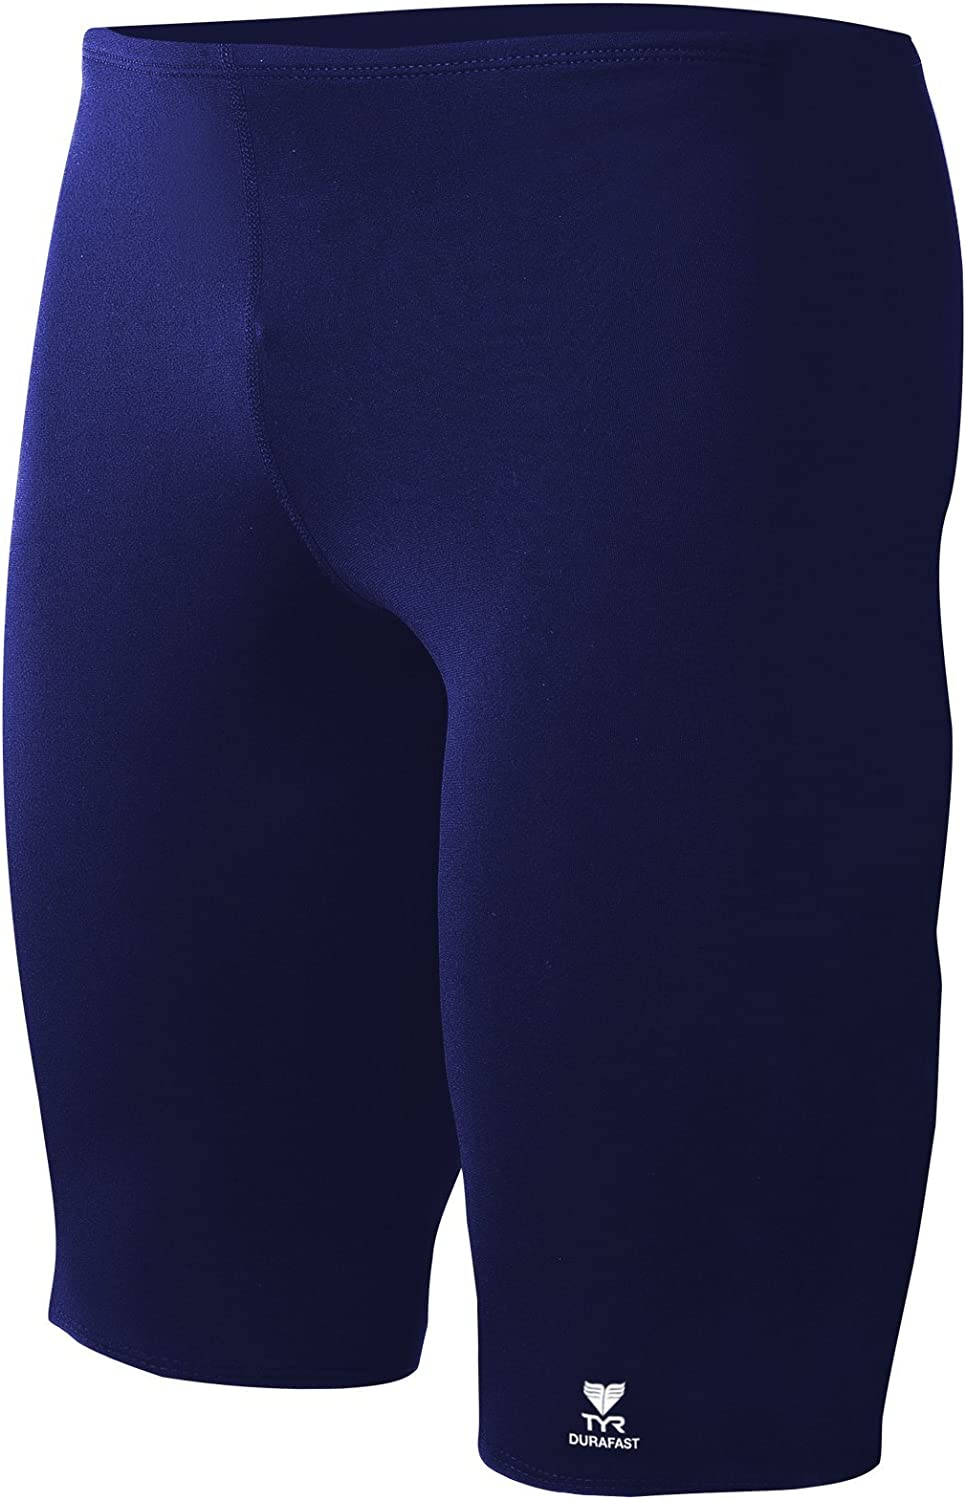 TYR Boy's Durafast Elite Solid Jammer Swim Suit (Navy, 24)